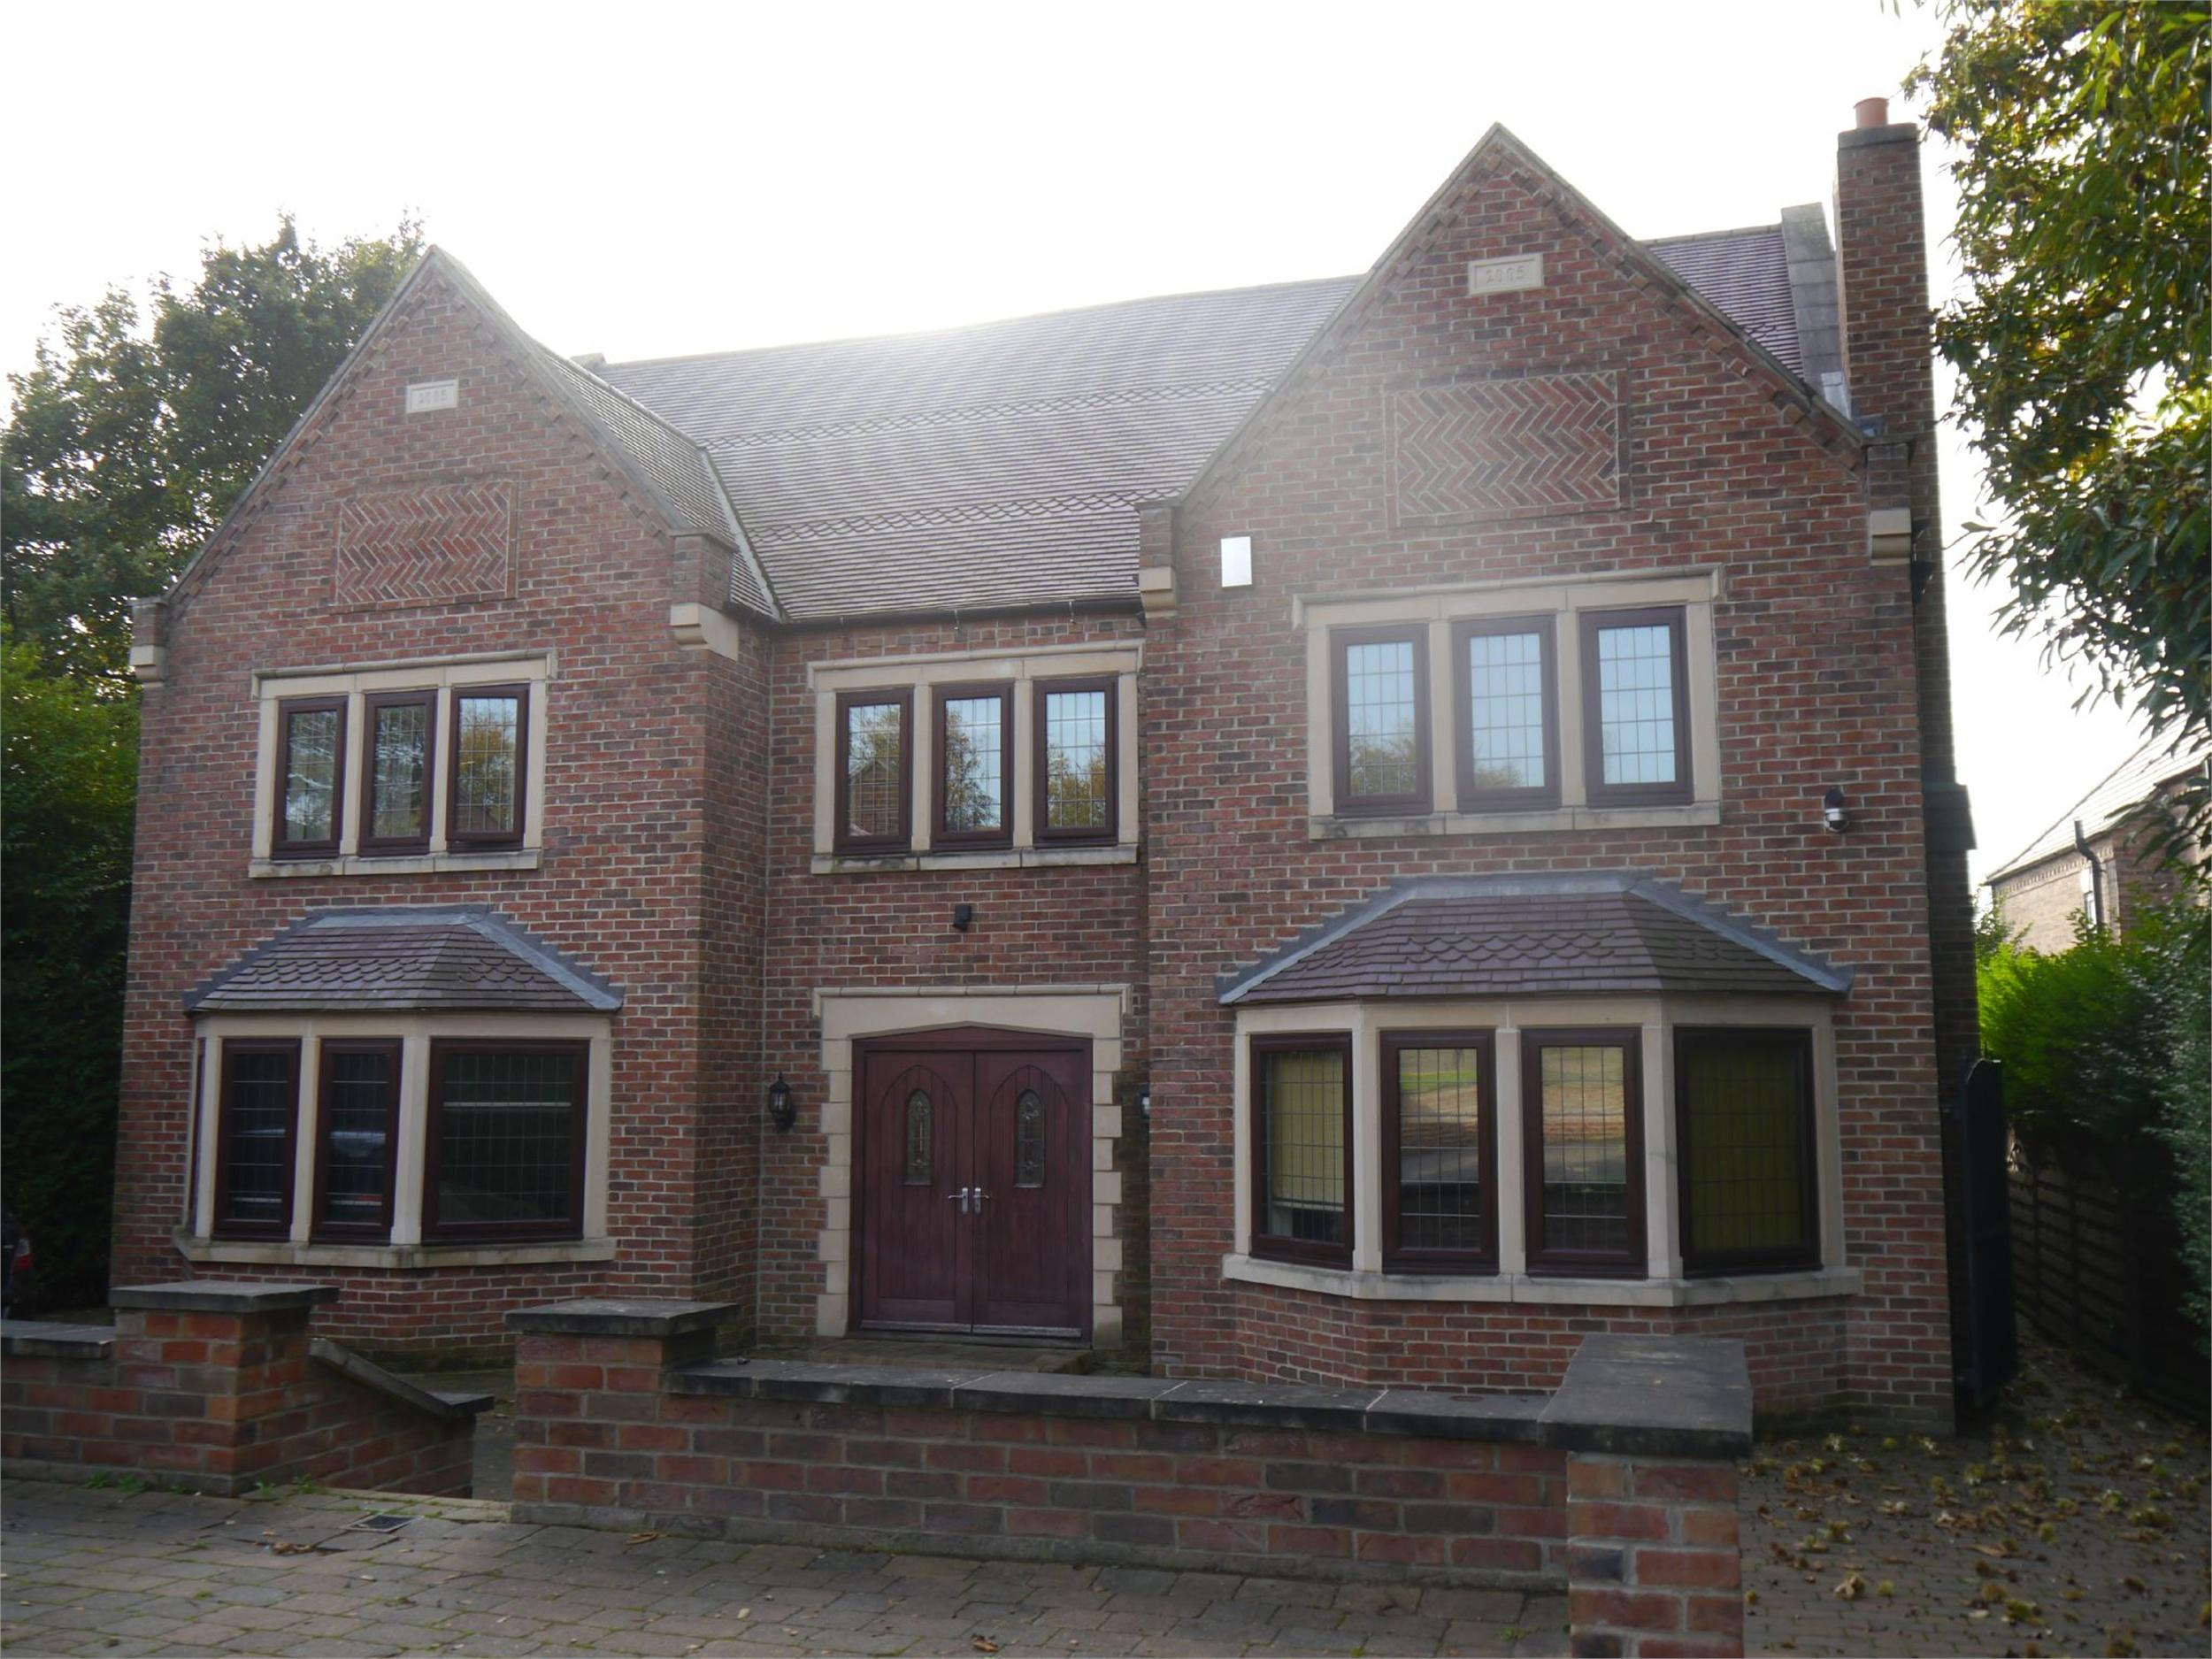 whitegates doncaster 5 bedroom detached house for sale in bawtry